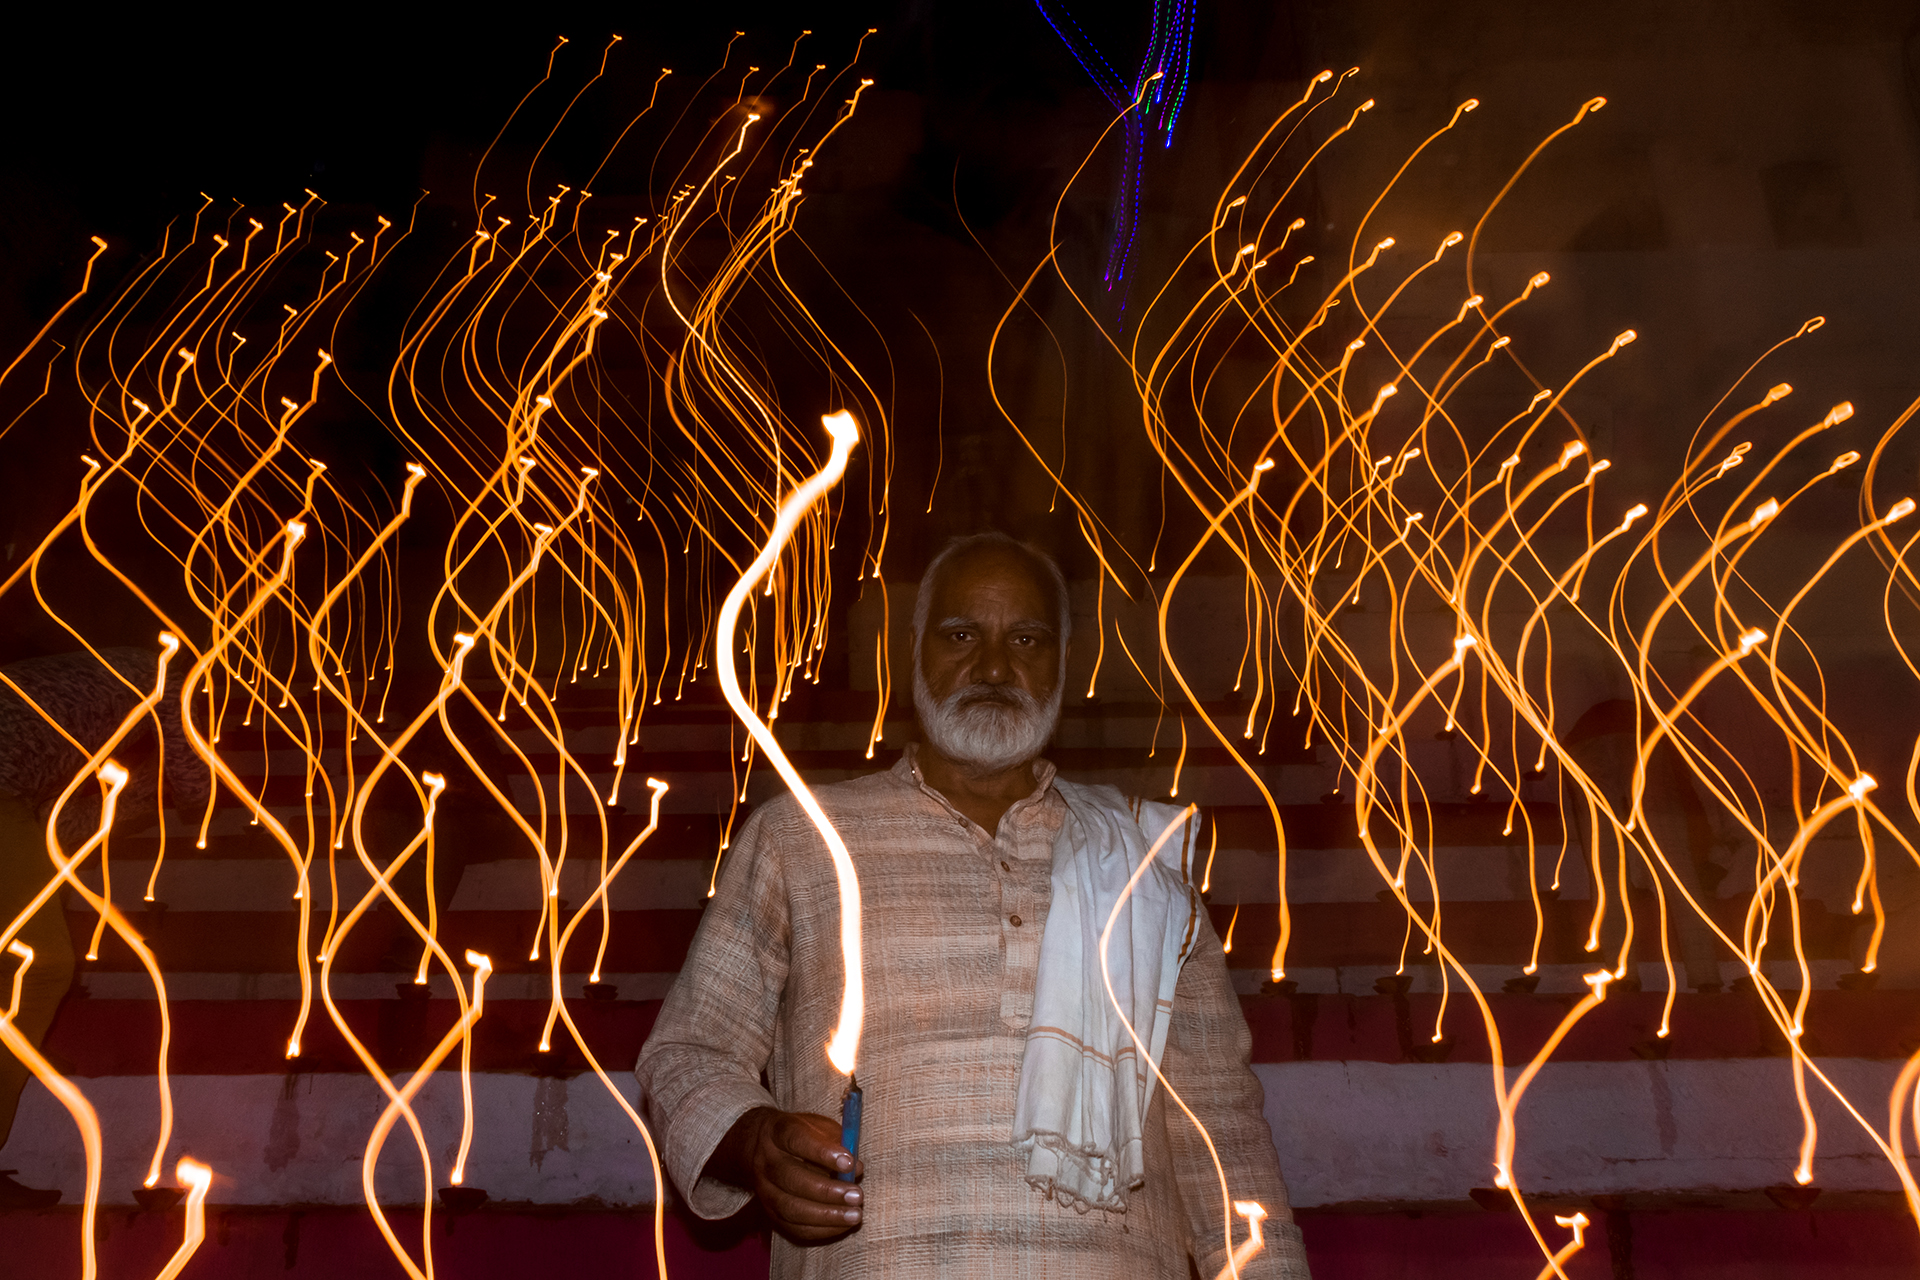 Man lights diyas on the occasion of Dev Deepawali, a festival of Kartik Poornima celebrated in Varanasi, Uttar Pradesh, India. It falls on the full moon of the Hindu month of Kartika and takes place fifteen days after Diwali.